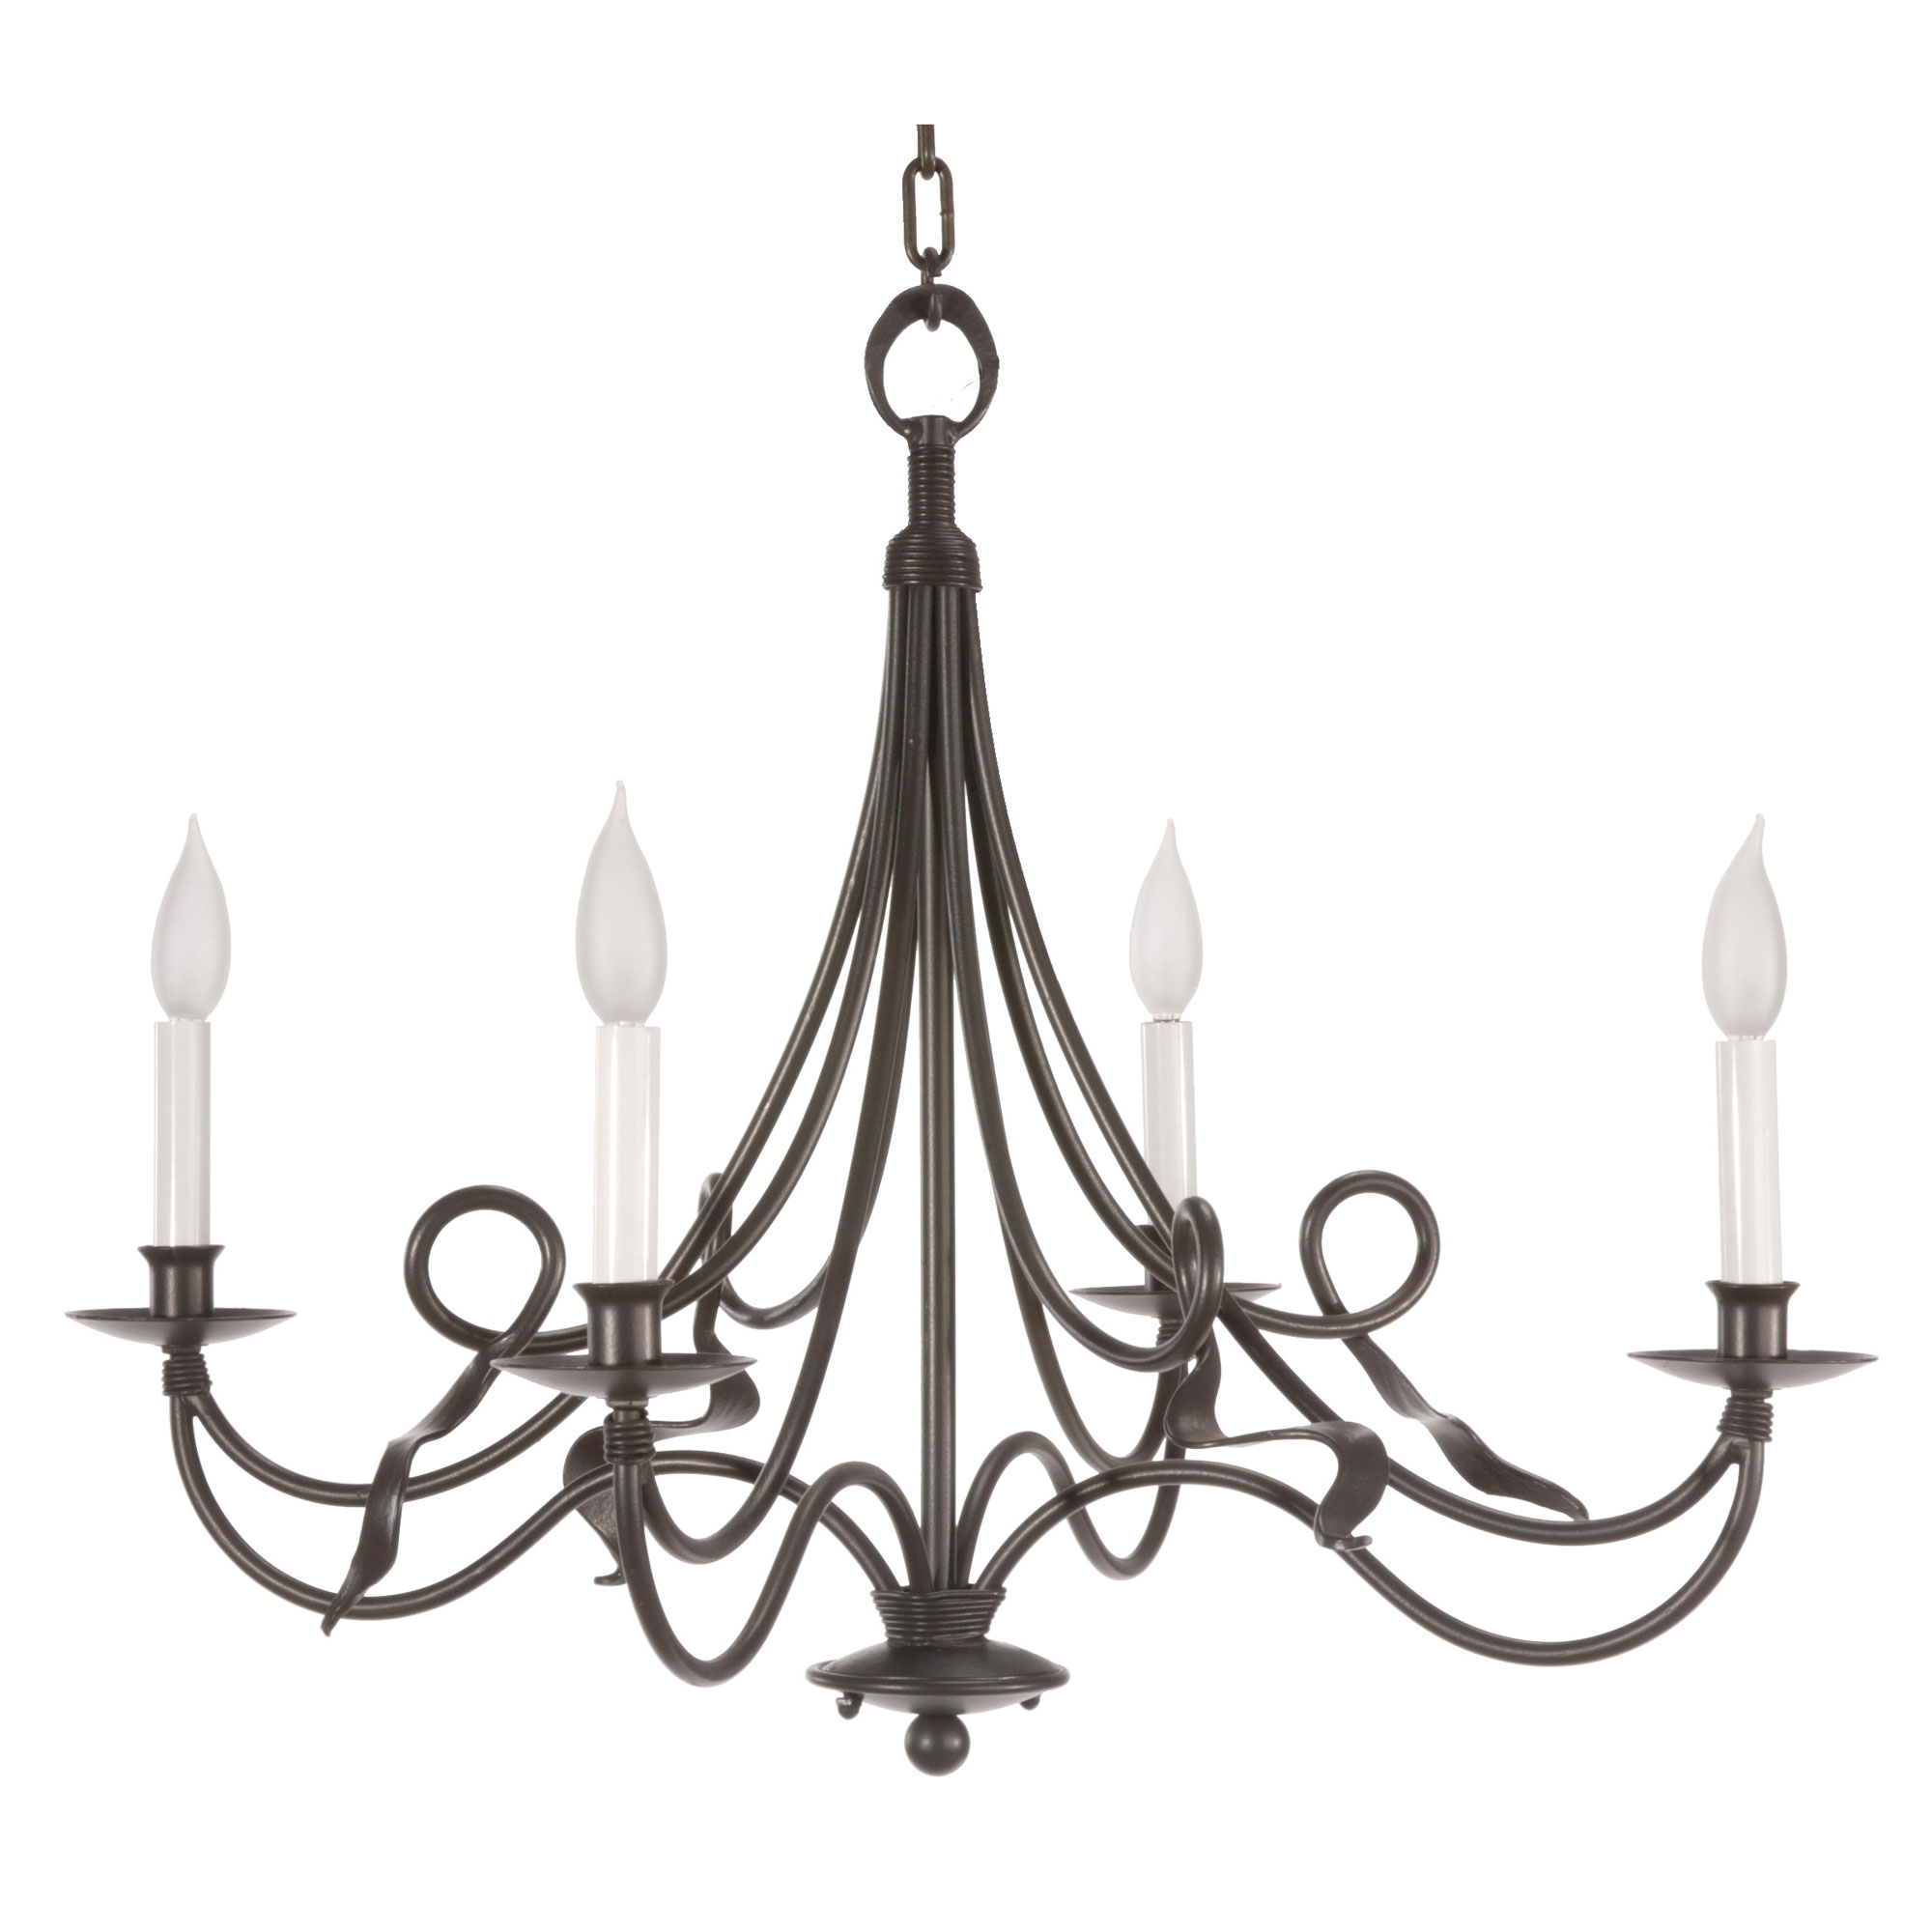 Well Liked Black Color Rustic Cast Iron Chandeliers With Candle Holder For With Regard To Cast Iron Chandelier (View 6 of 15)